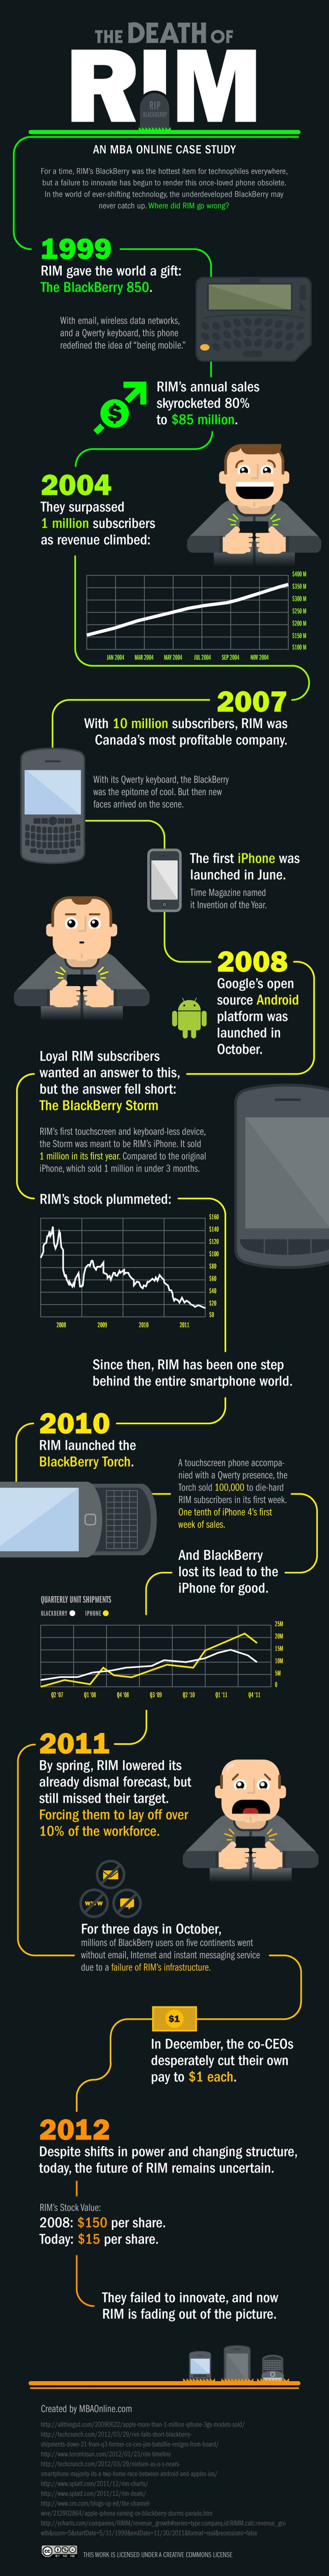 The Death of RIM. Is it finally time to put optimism aside?